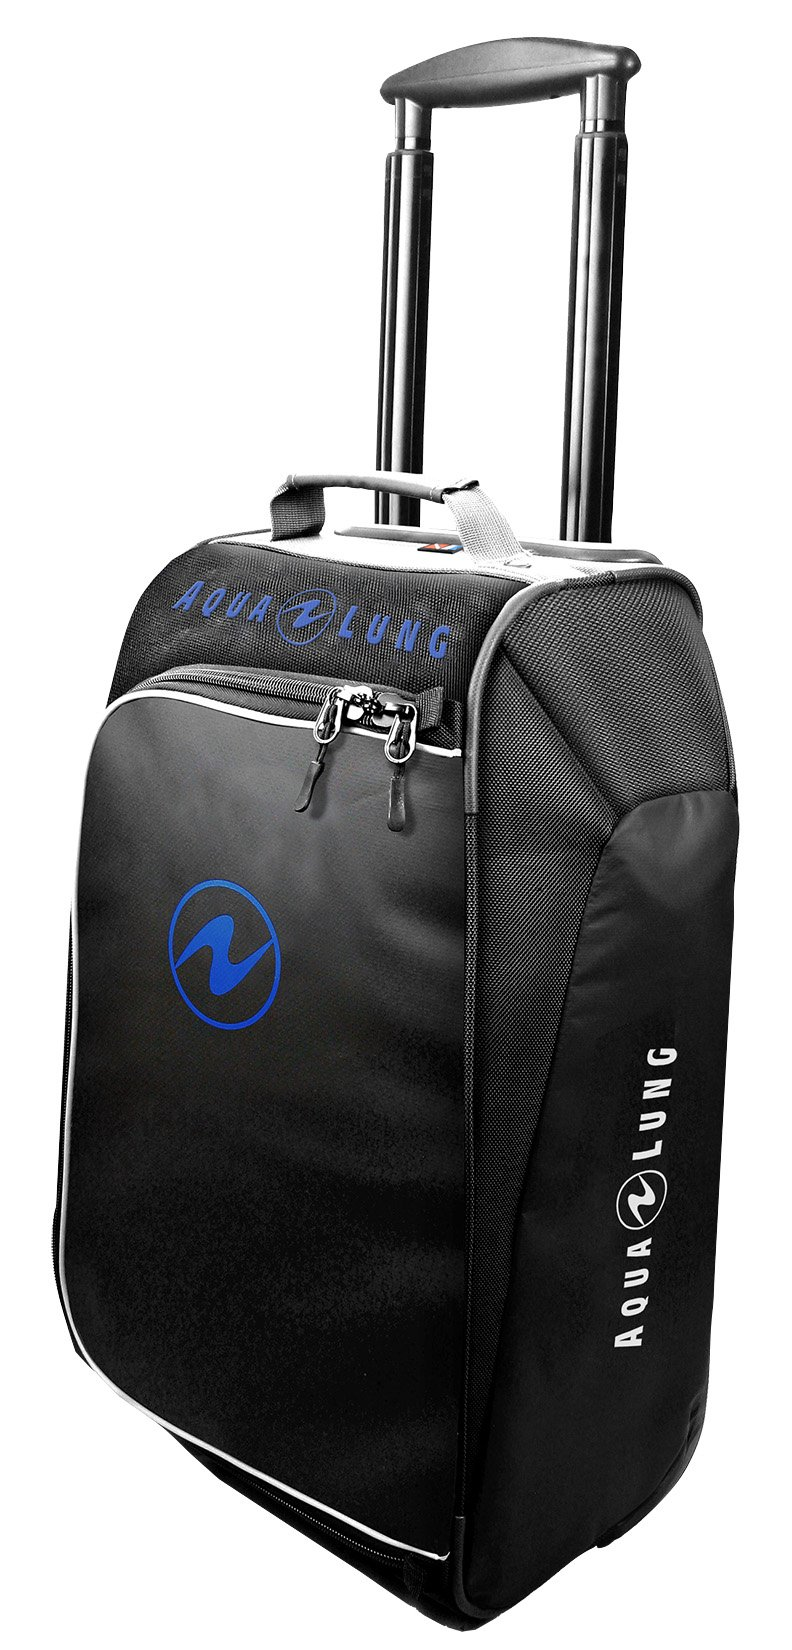 Aqua Lung Explorer Carry On Bag